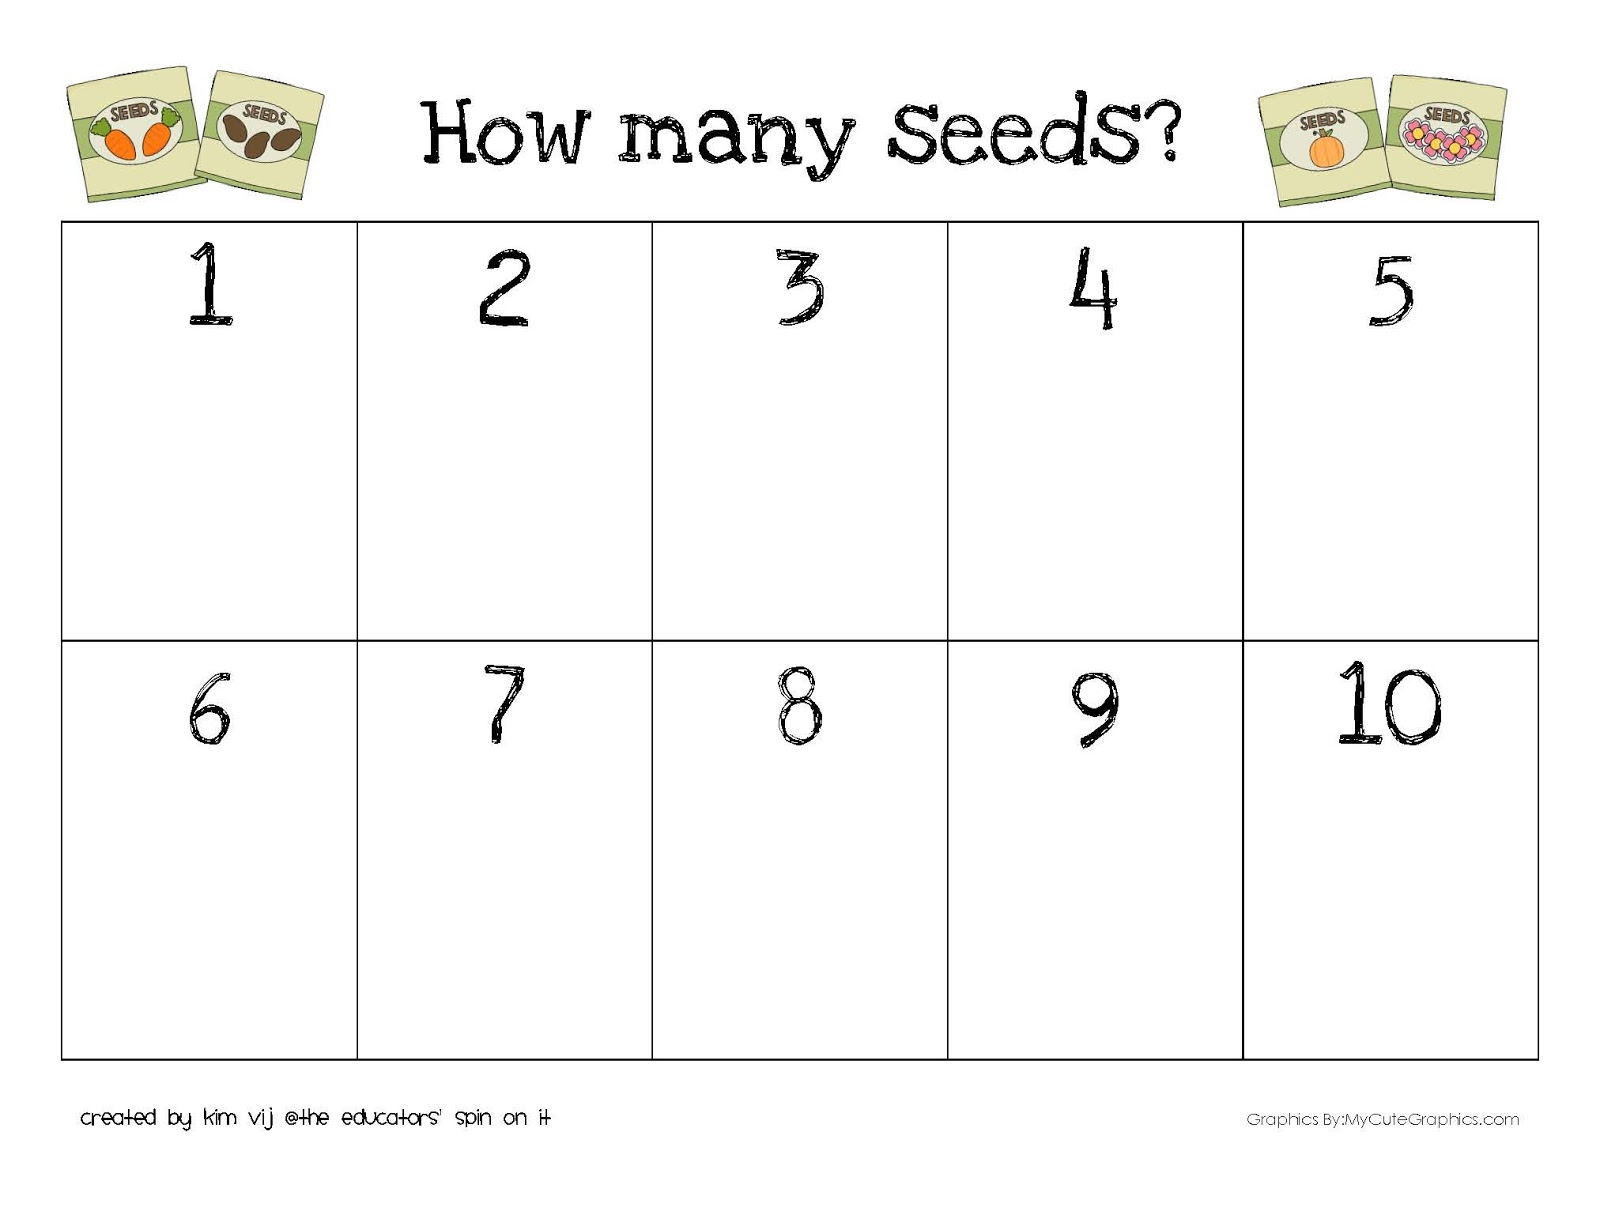 The Educators Spin On It Printable Seed Activities Inspired By The Tiny Seed By Eric Carle